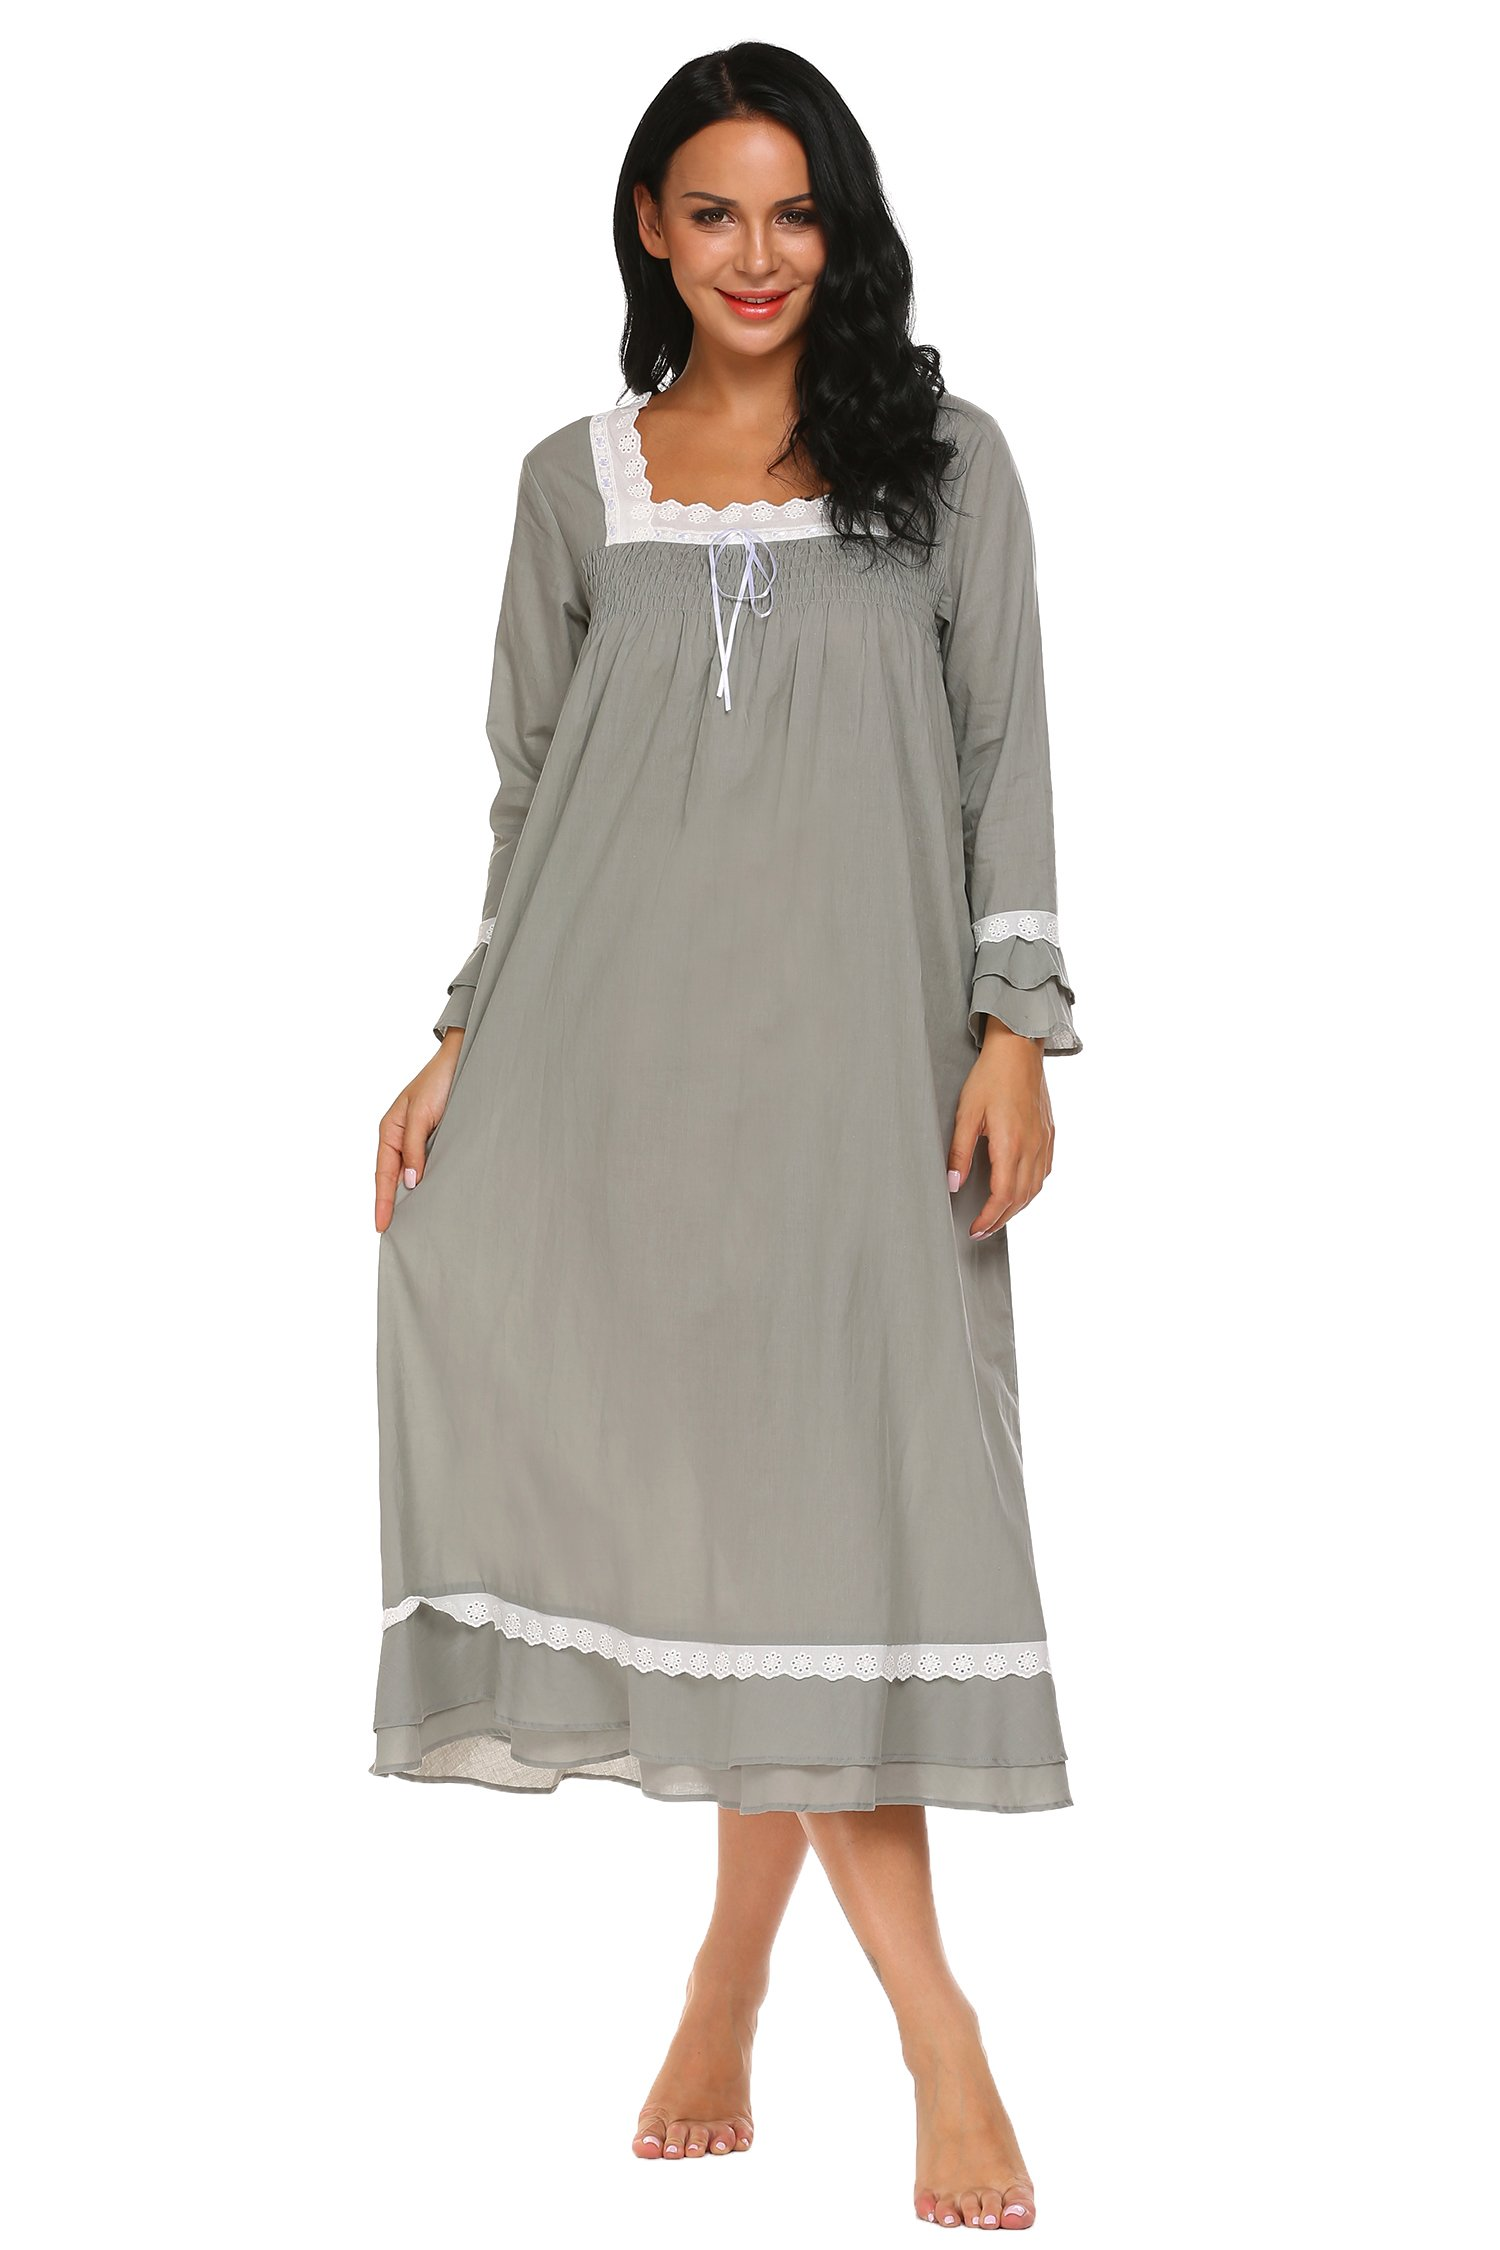 1a904233fdf Ekouaer Women's Nightgowns Lingerie Cute Nightwear Cotton Sleepwear Lace  Chemise Babydoll Pajamas, 7105grey, XX-Large